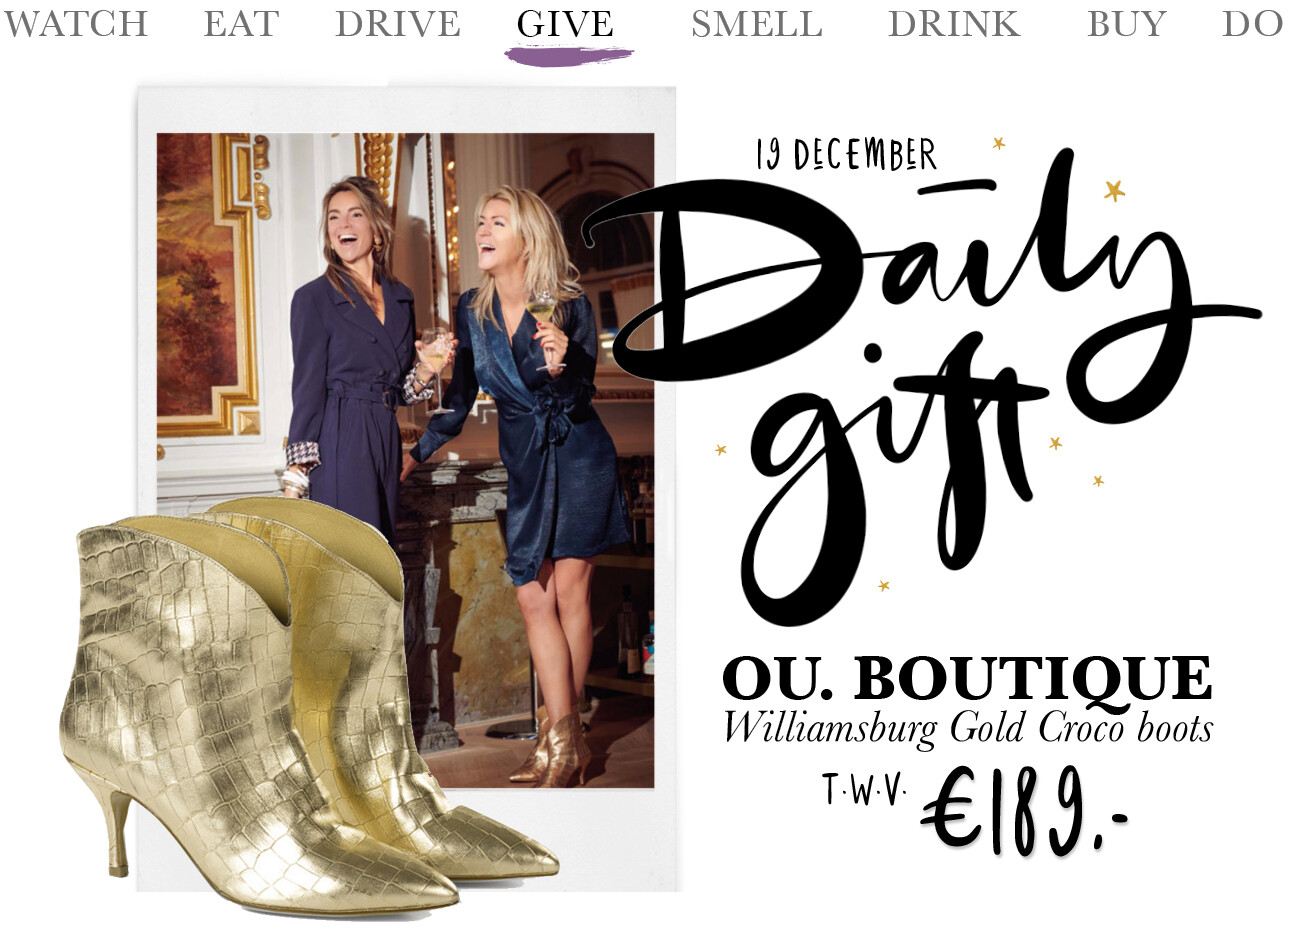 Today we give: OU. Boutique Williamsburg Gold Croco boots